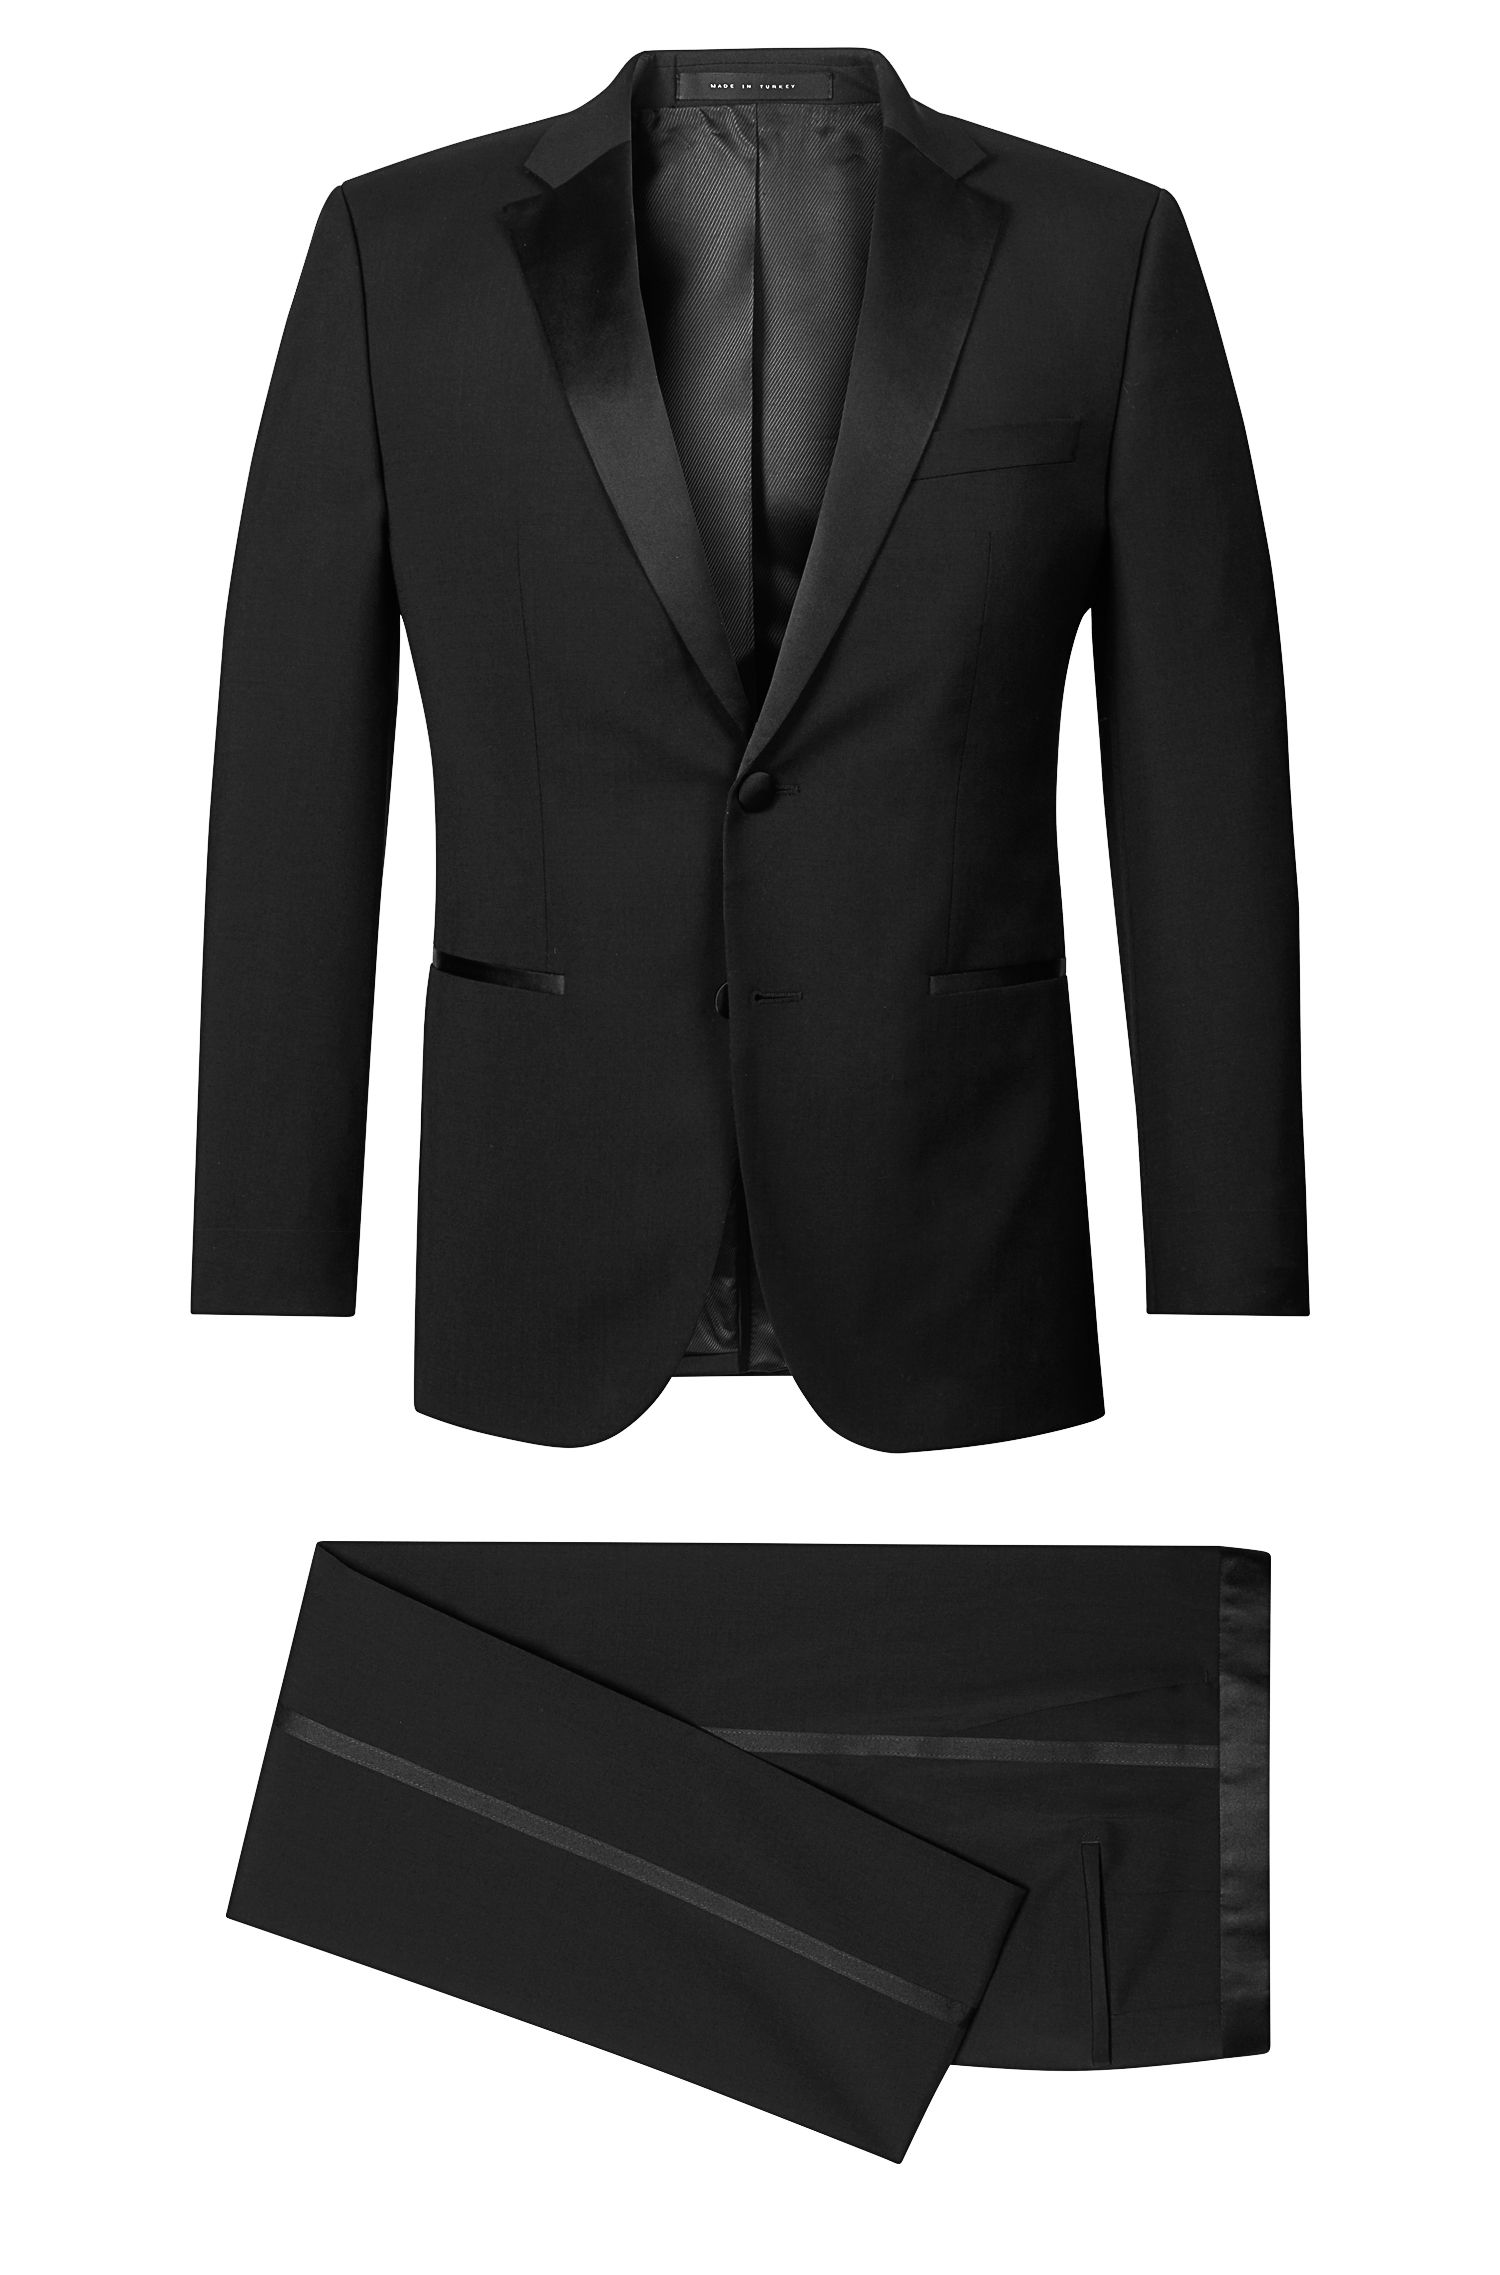 'Stars/Glamour ' | Regular Fit, Virgin Wool Notched Lapel Tuxedo